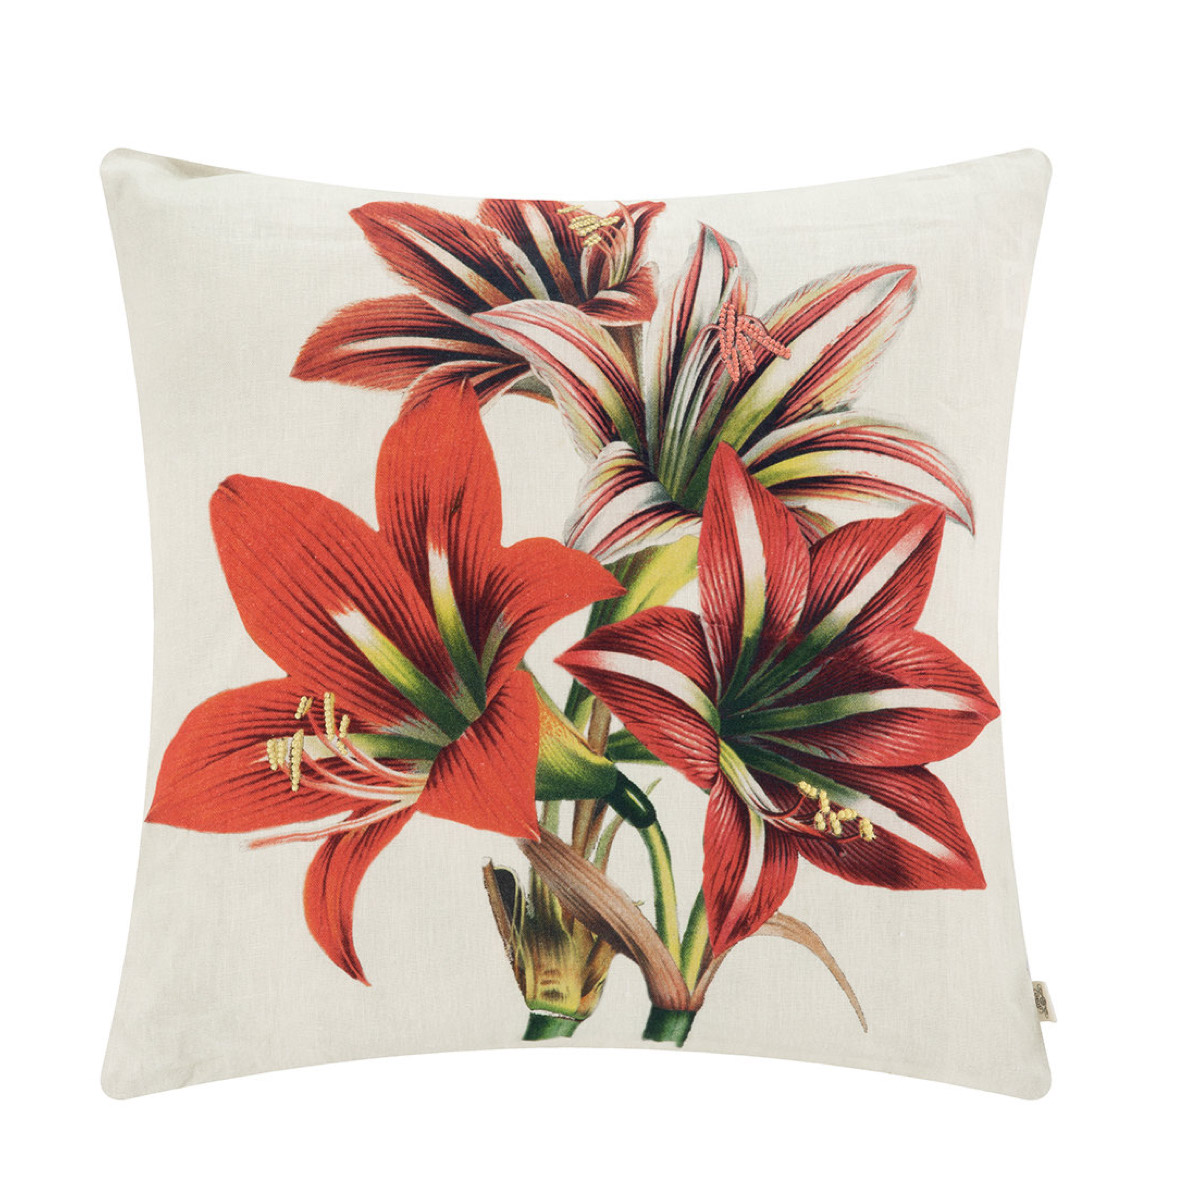 Amaryllis cushion